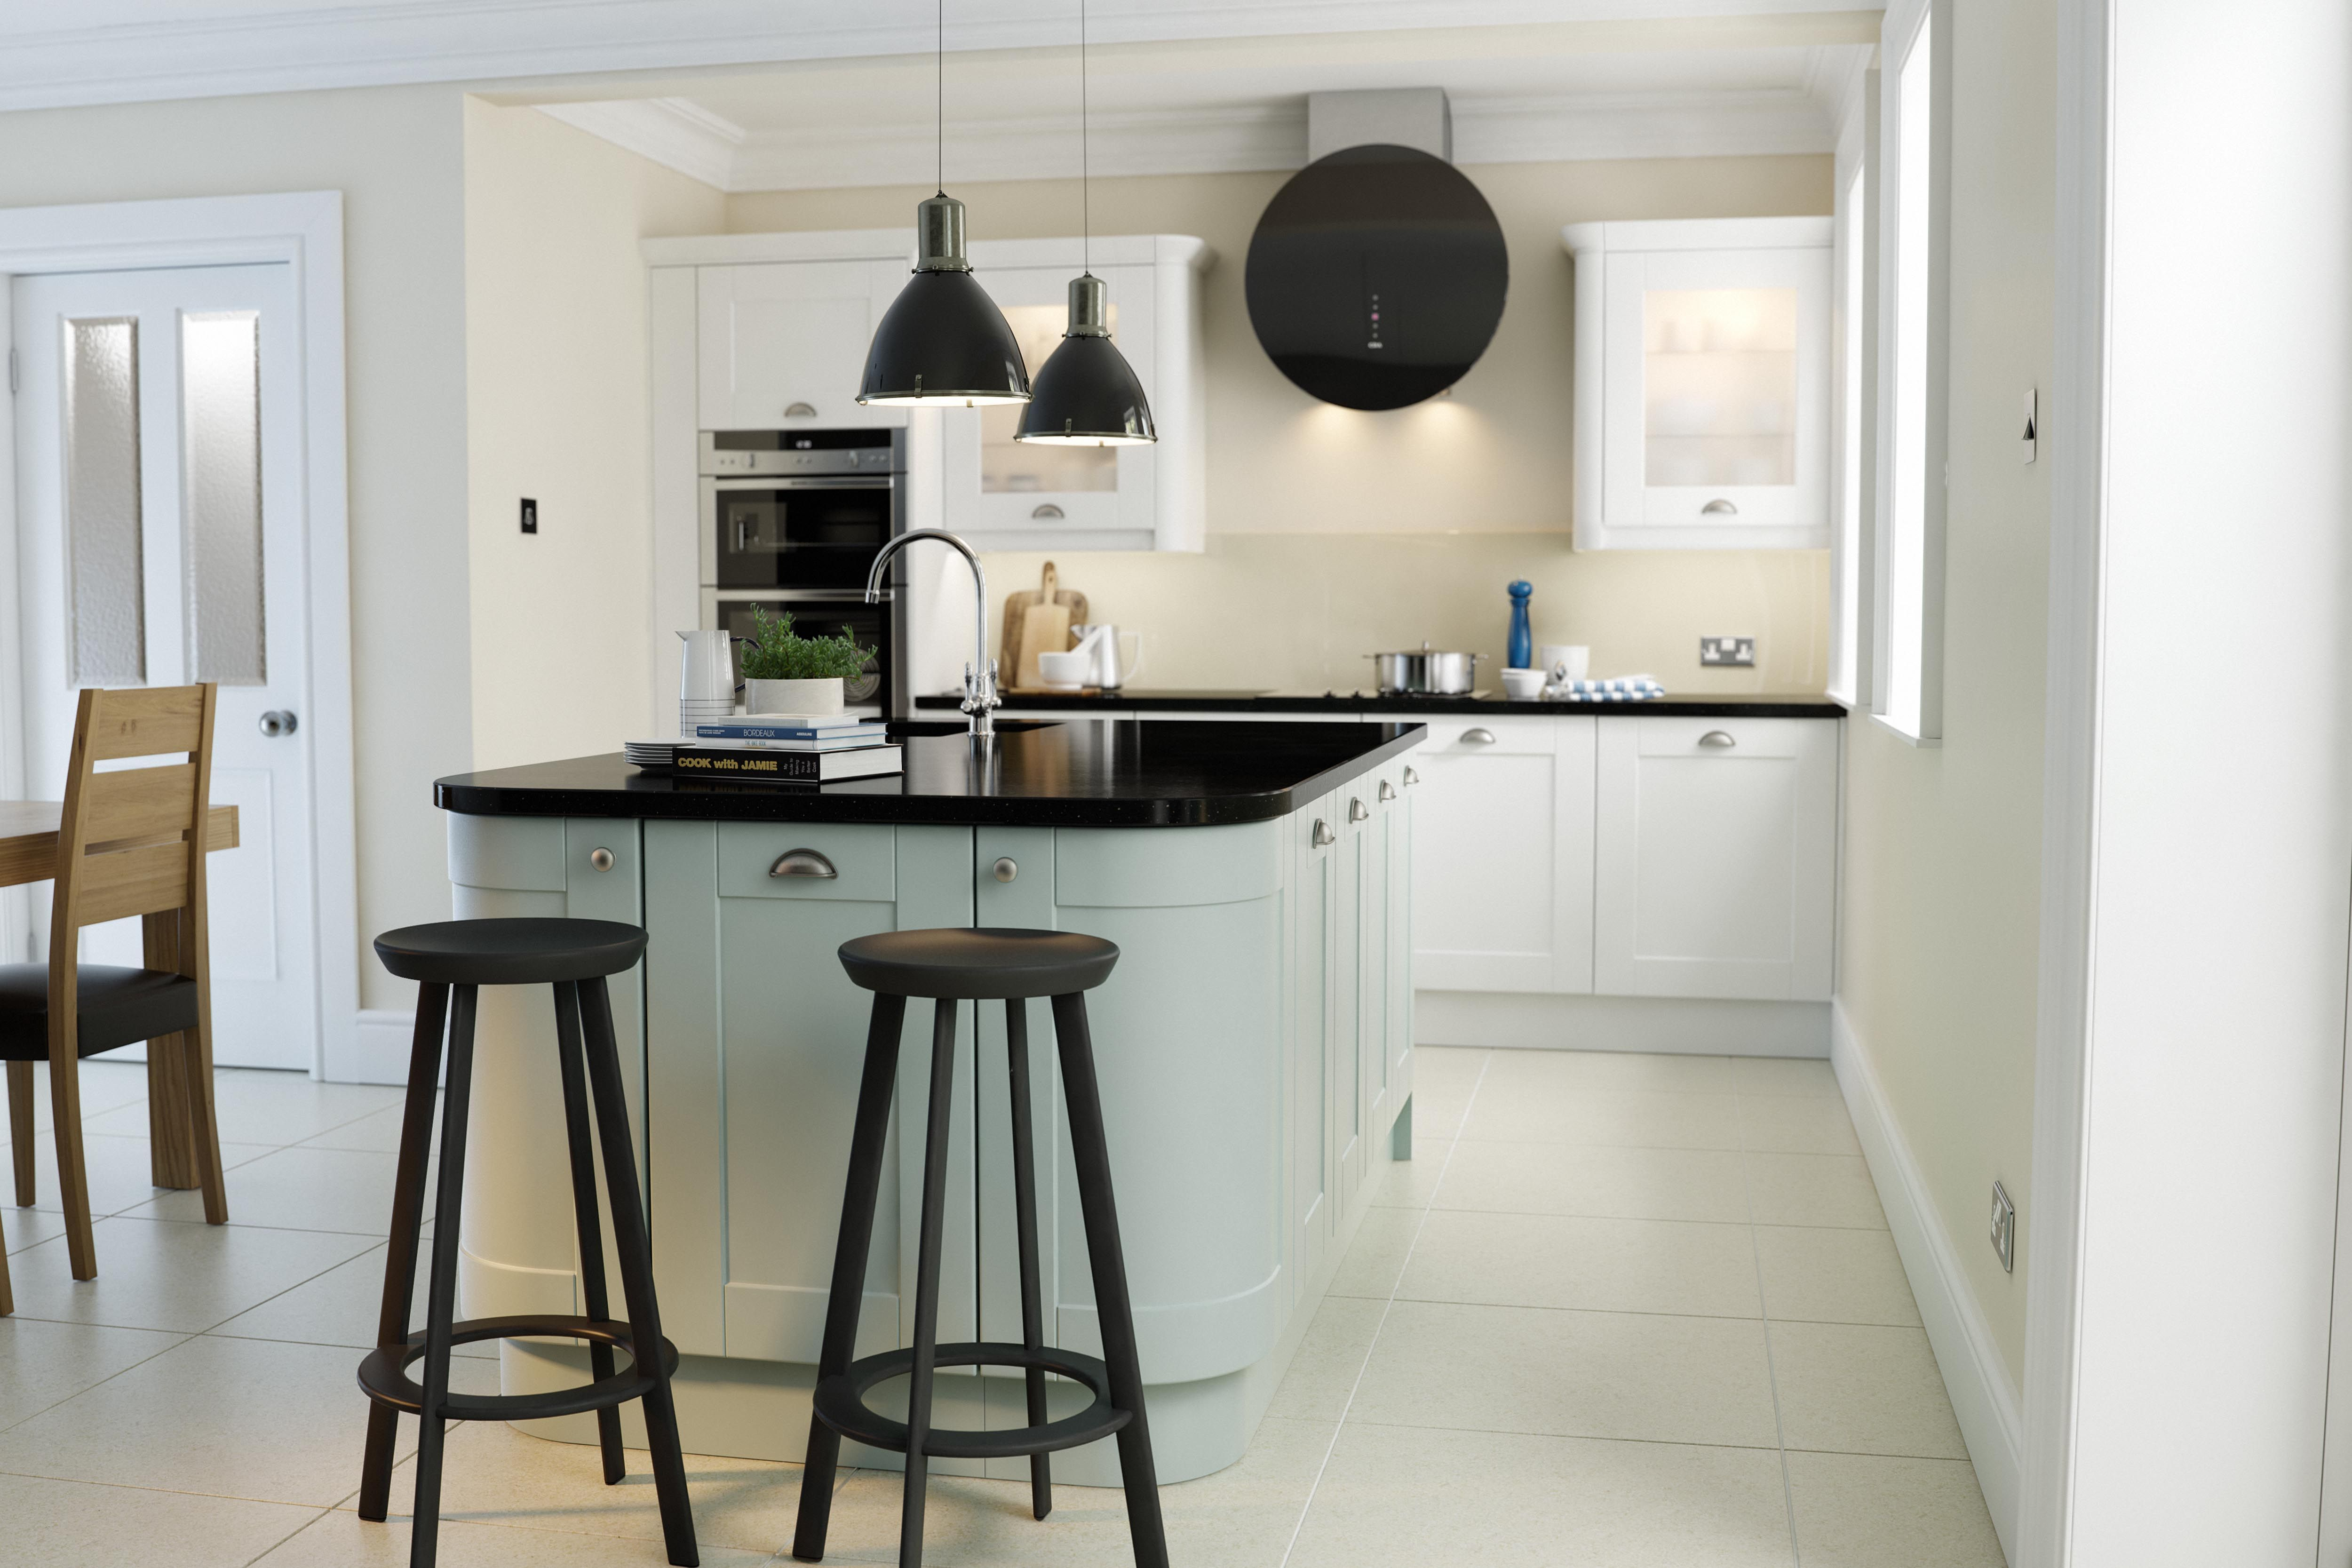 Wren Kitchens - Shaker Ermine Pale Sky - New for 2014 this stunning ...